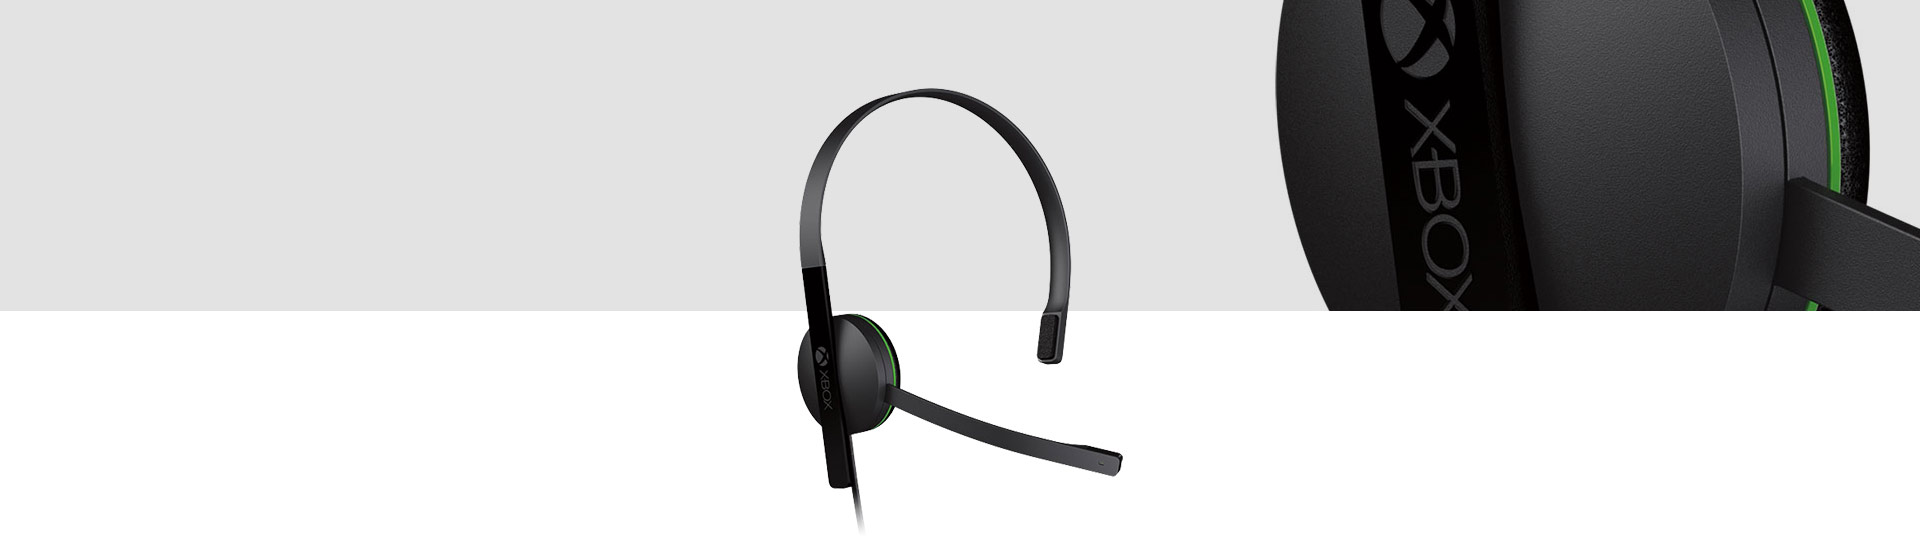 Casque de clavardage Xbox One